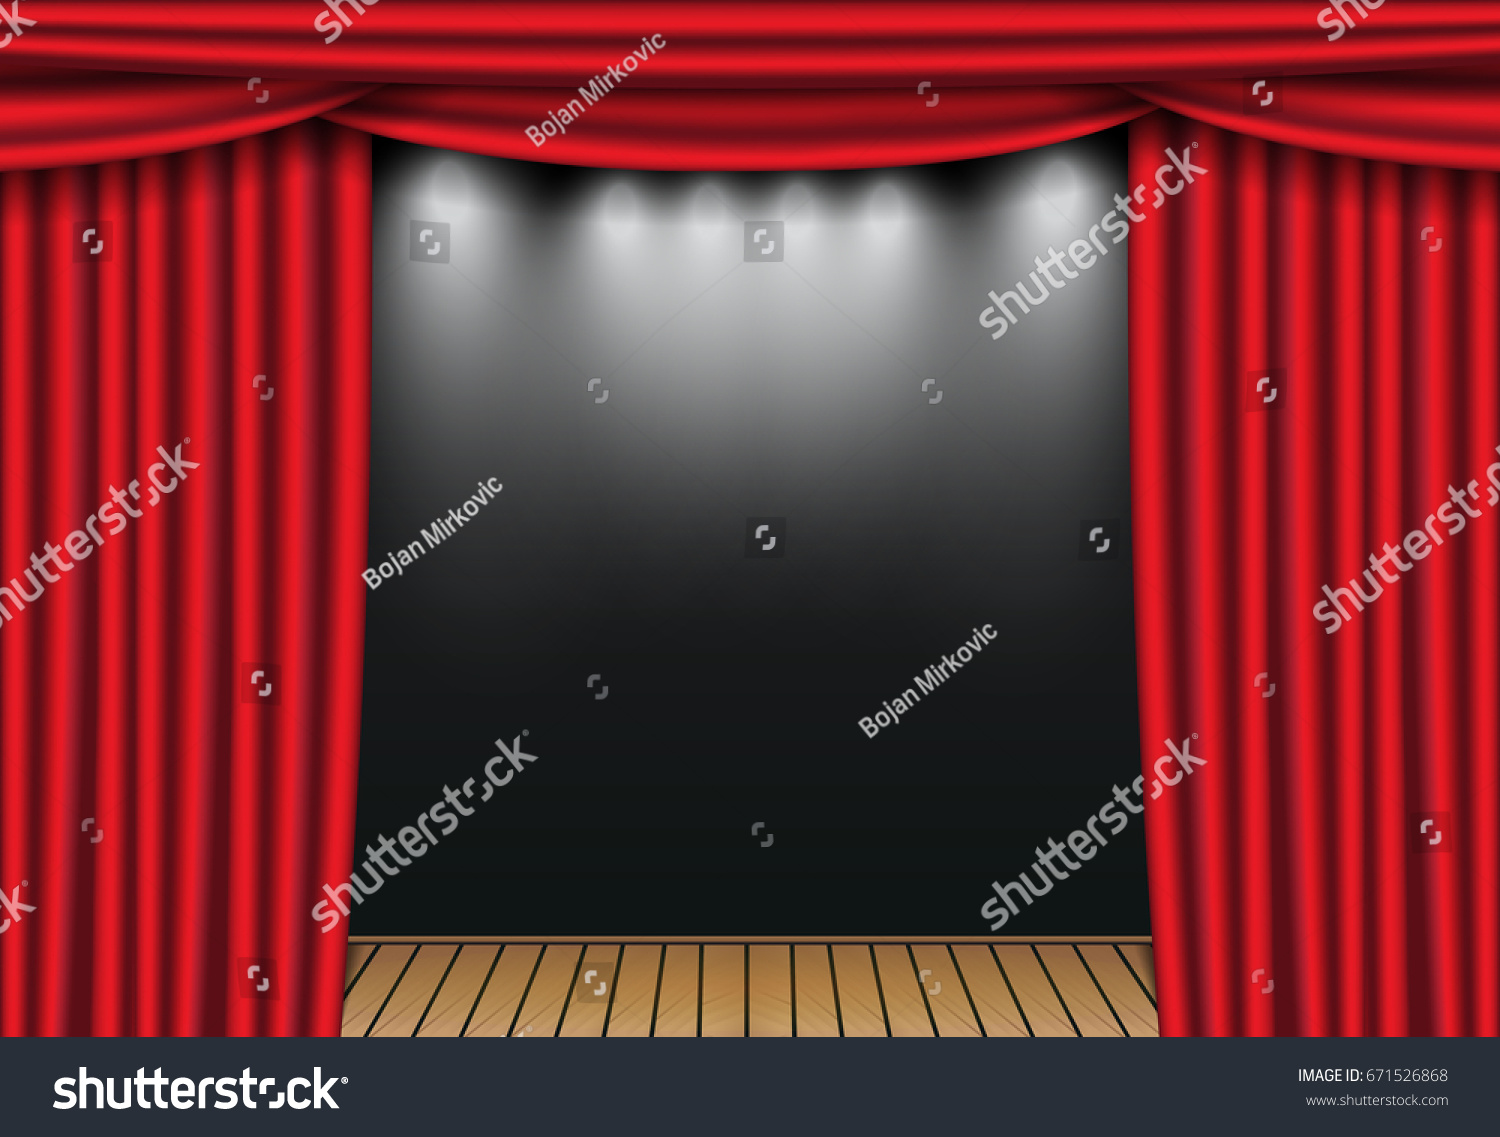 Stage curtains spotlight - Red Theater Curtains With Spotlight And Wooden Stage Open Velvet Drapes Vector Illustration